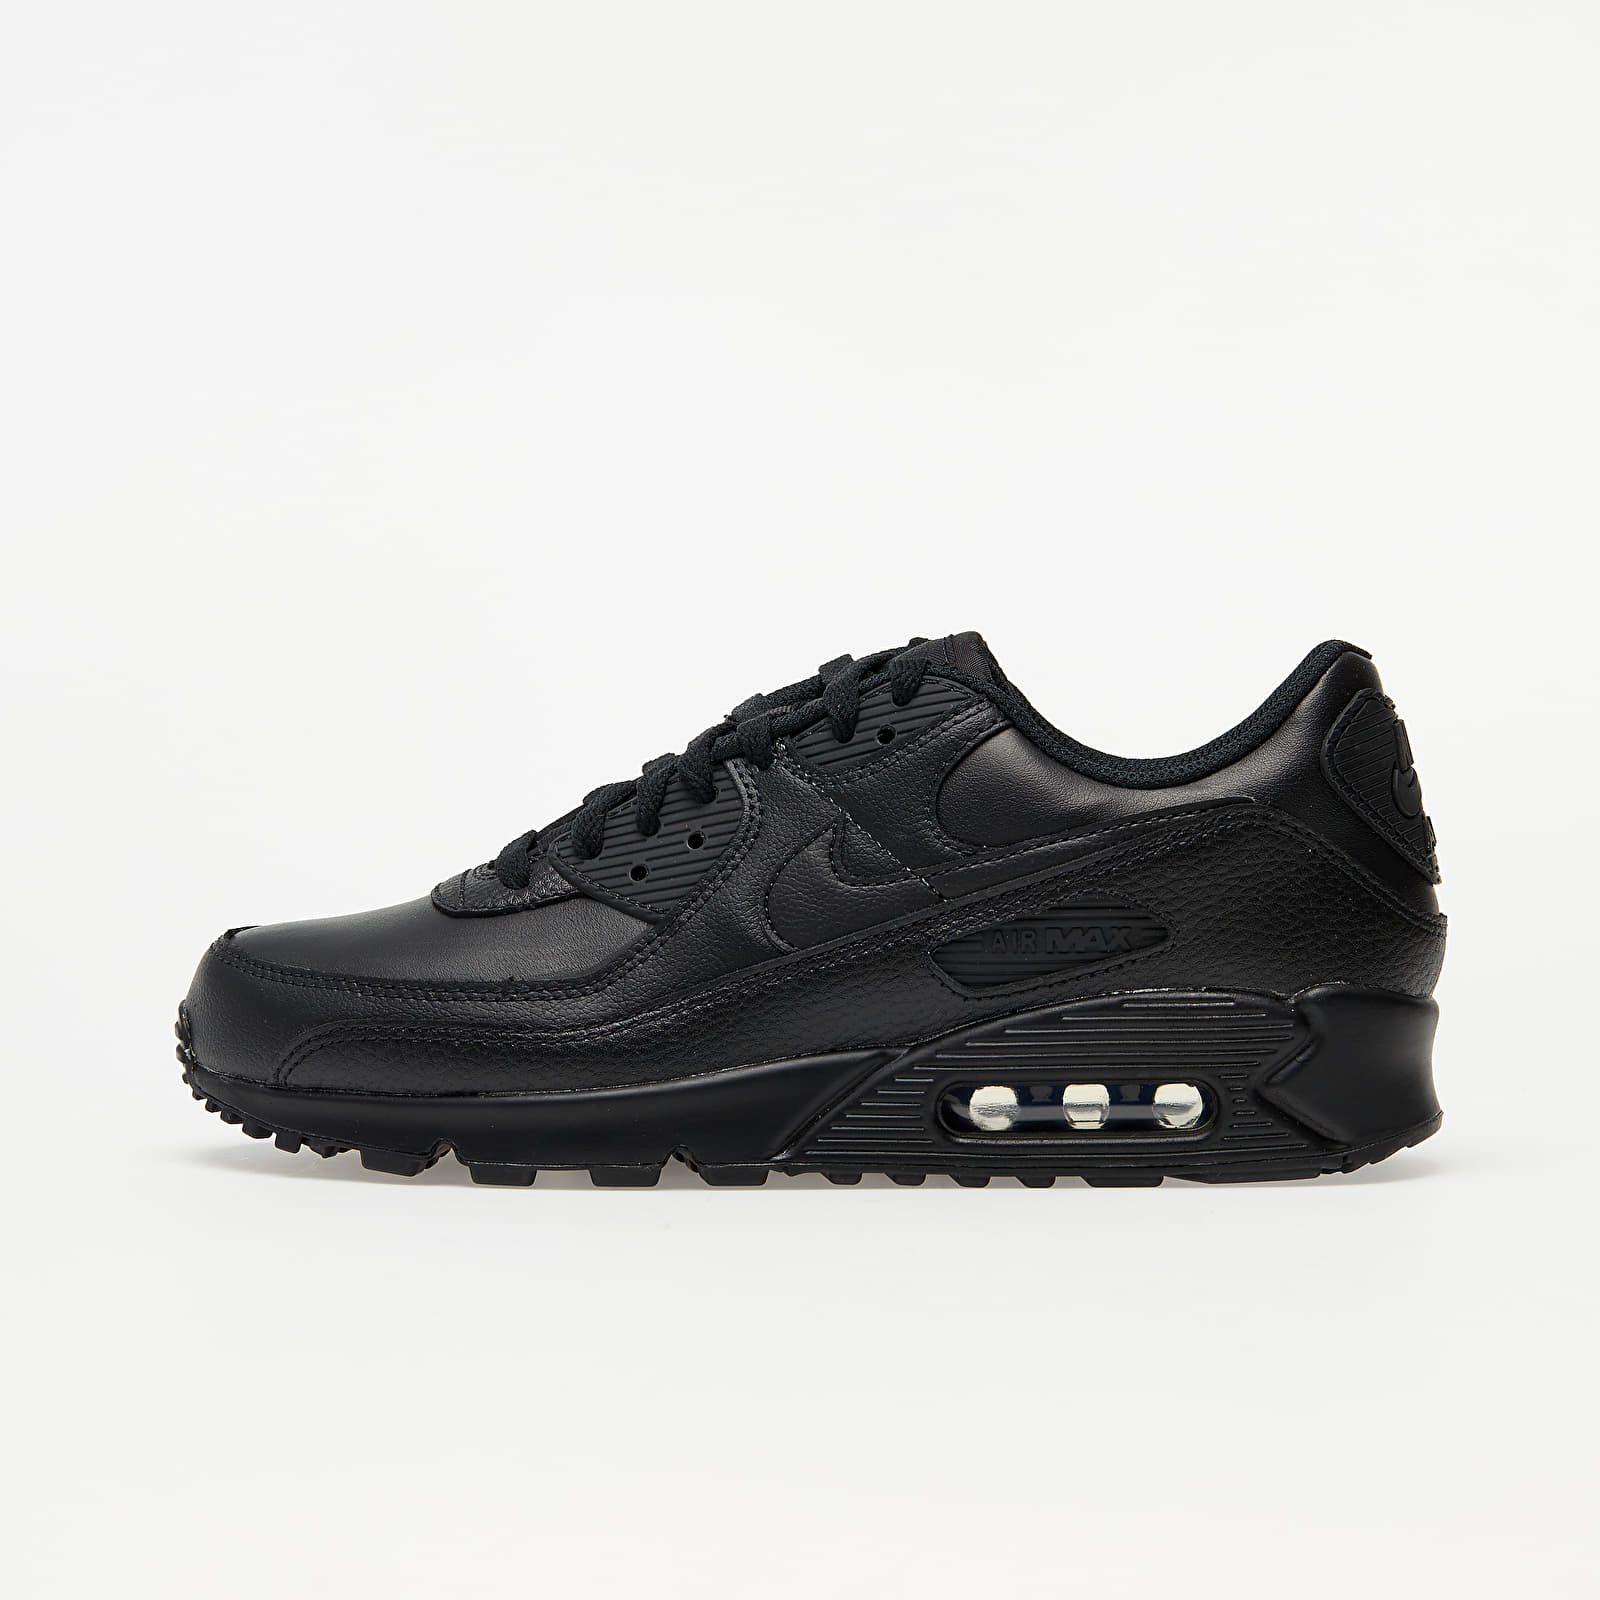 Nike Air Max 90 Leather Black/ Black-Black EUR 39